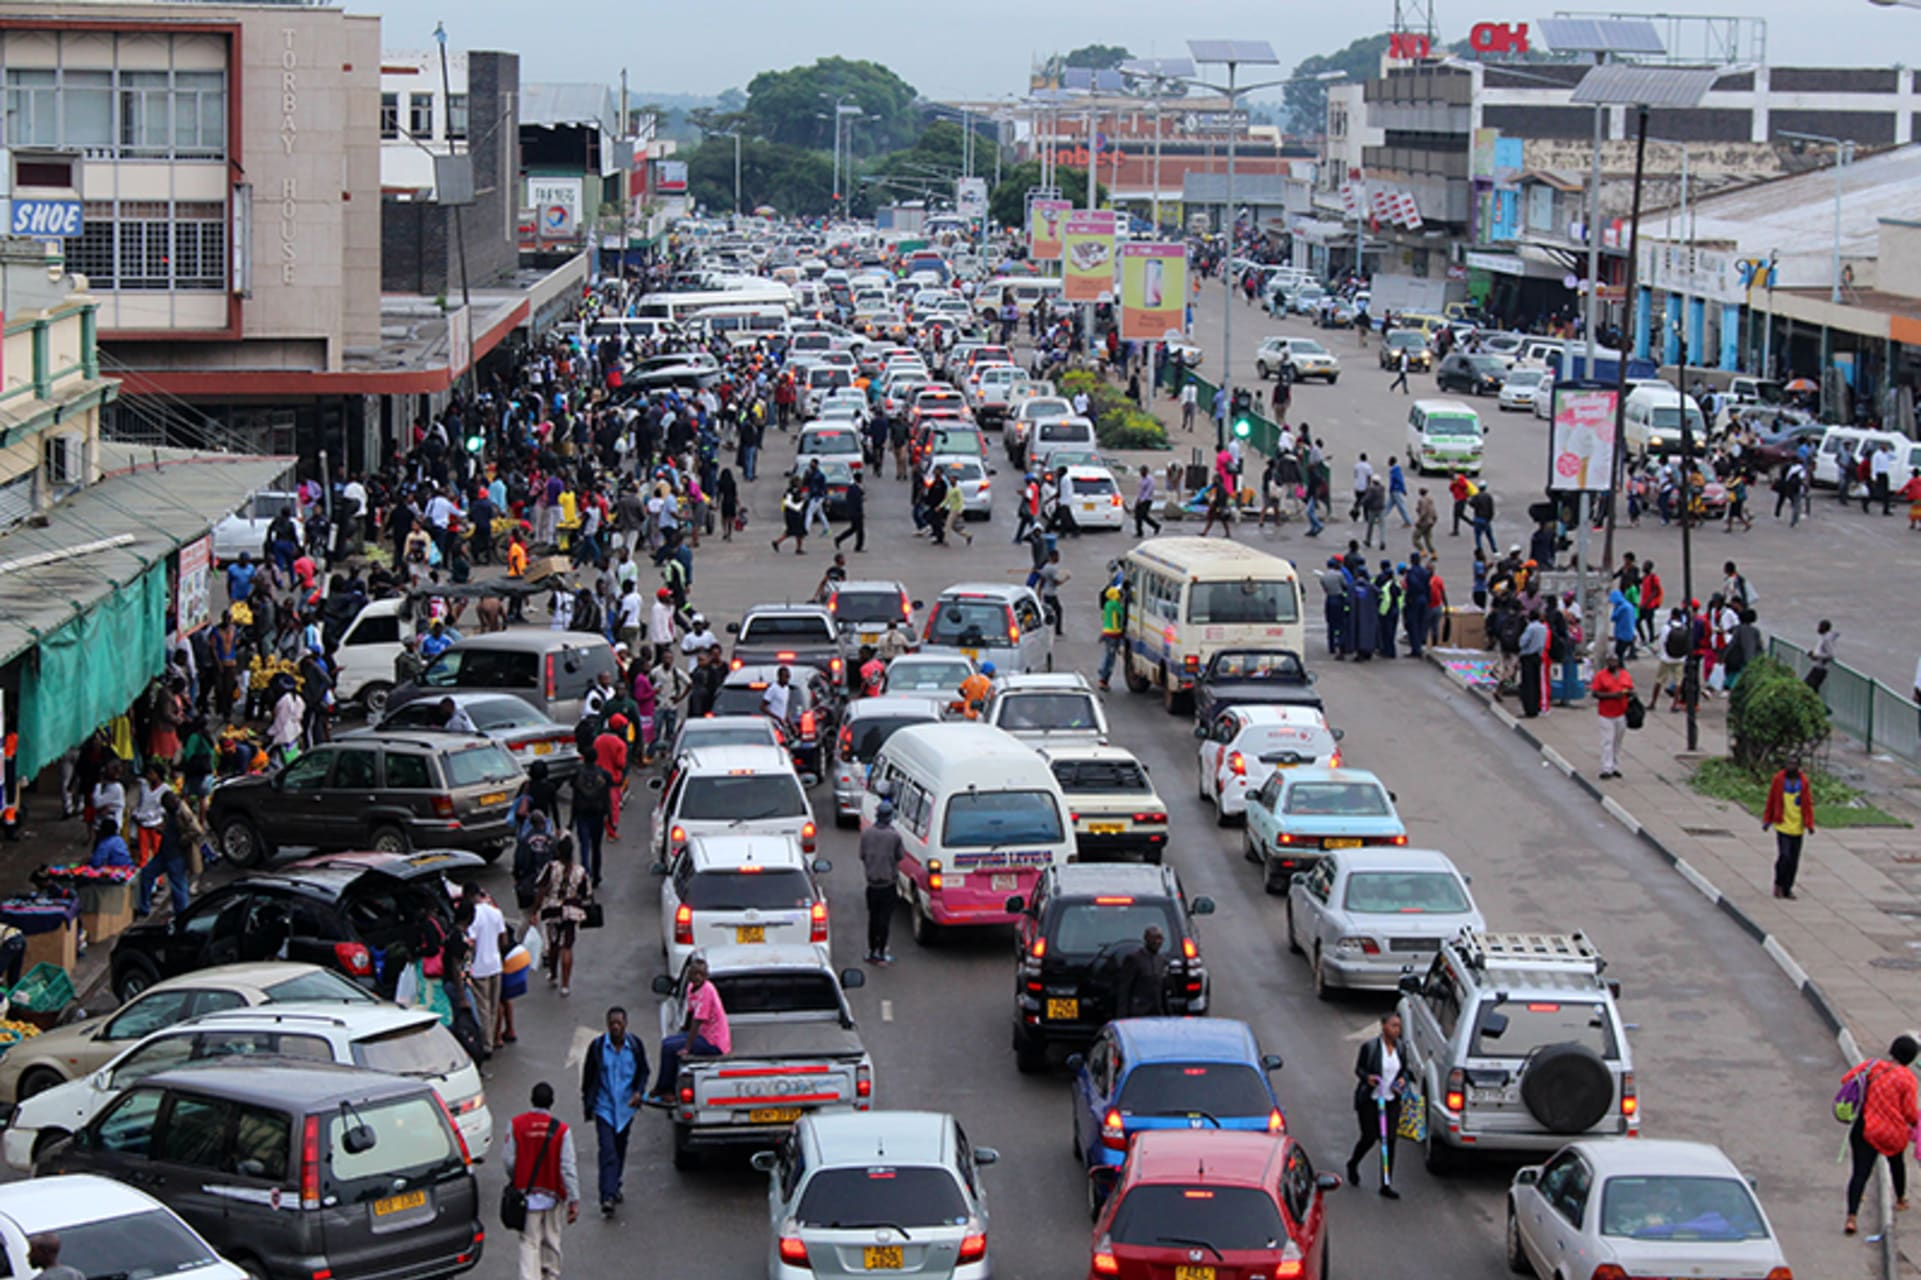 Harare - Hustle and bustle of Zimbabwean workers heading home